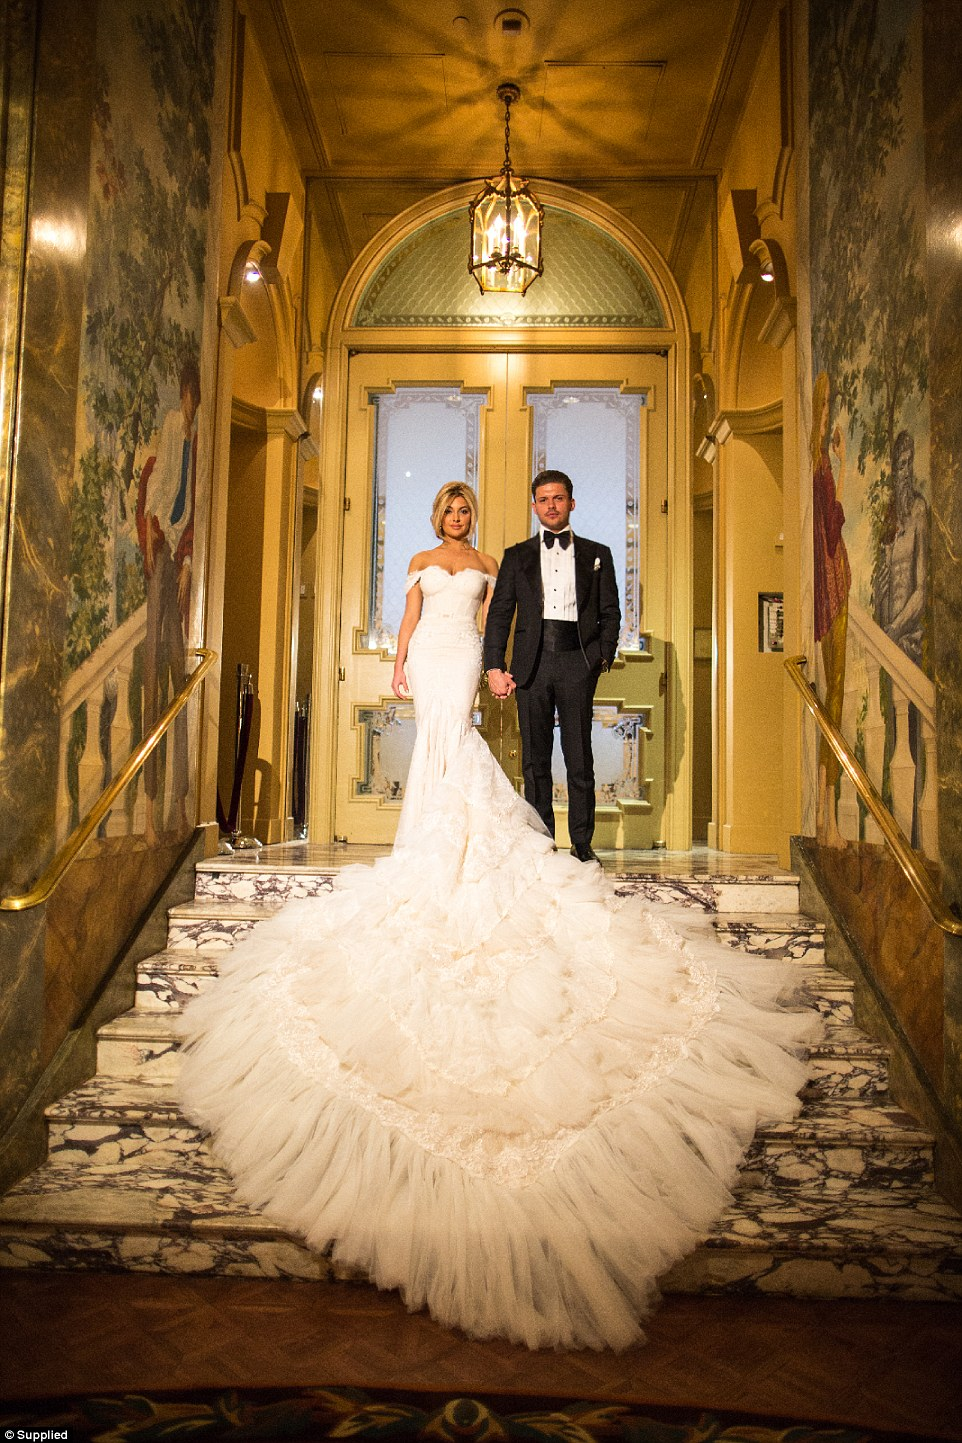 The couple wed in a grand city venue with high ceilings, trompe l'oeil paintings, gilt-edged mouldings and antique chandeliers